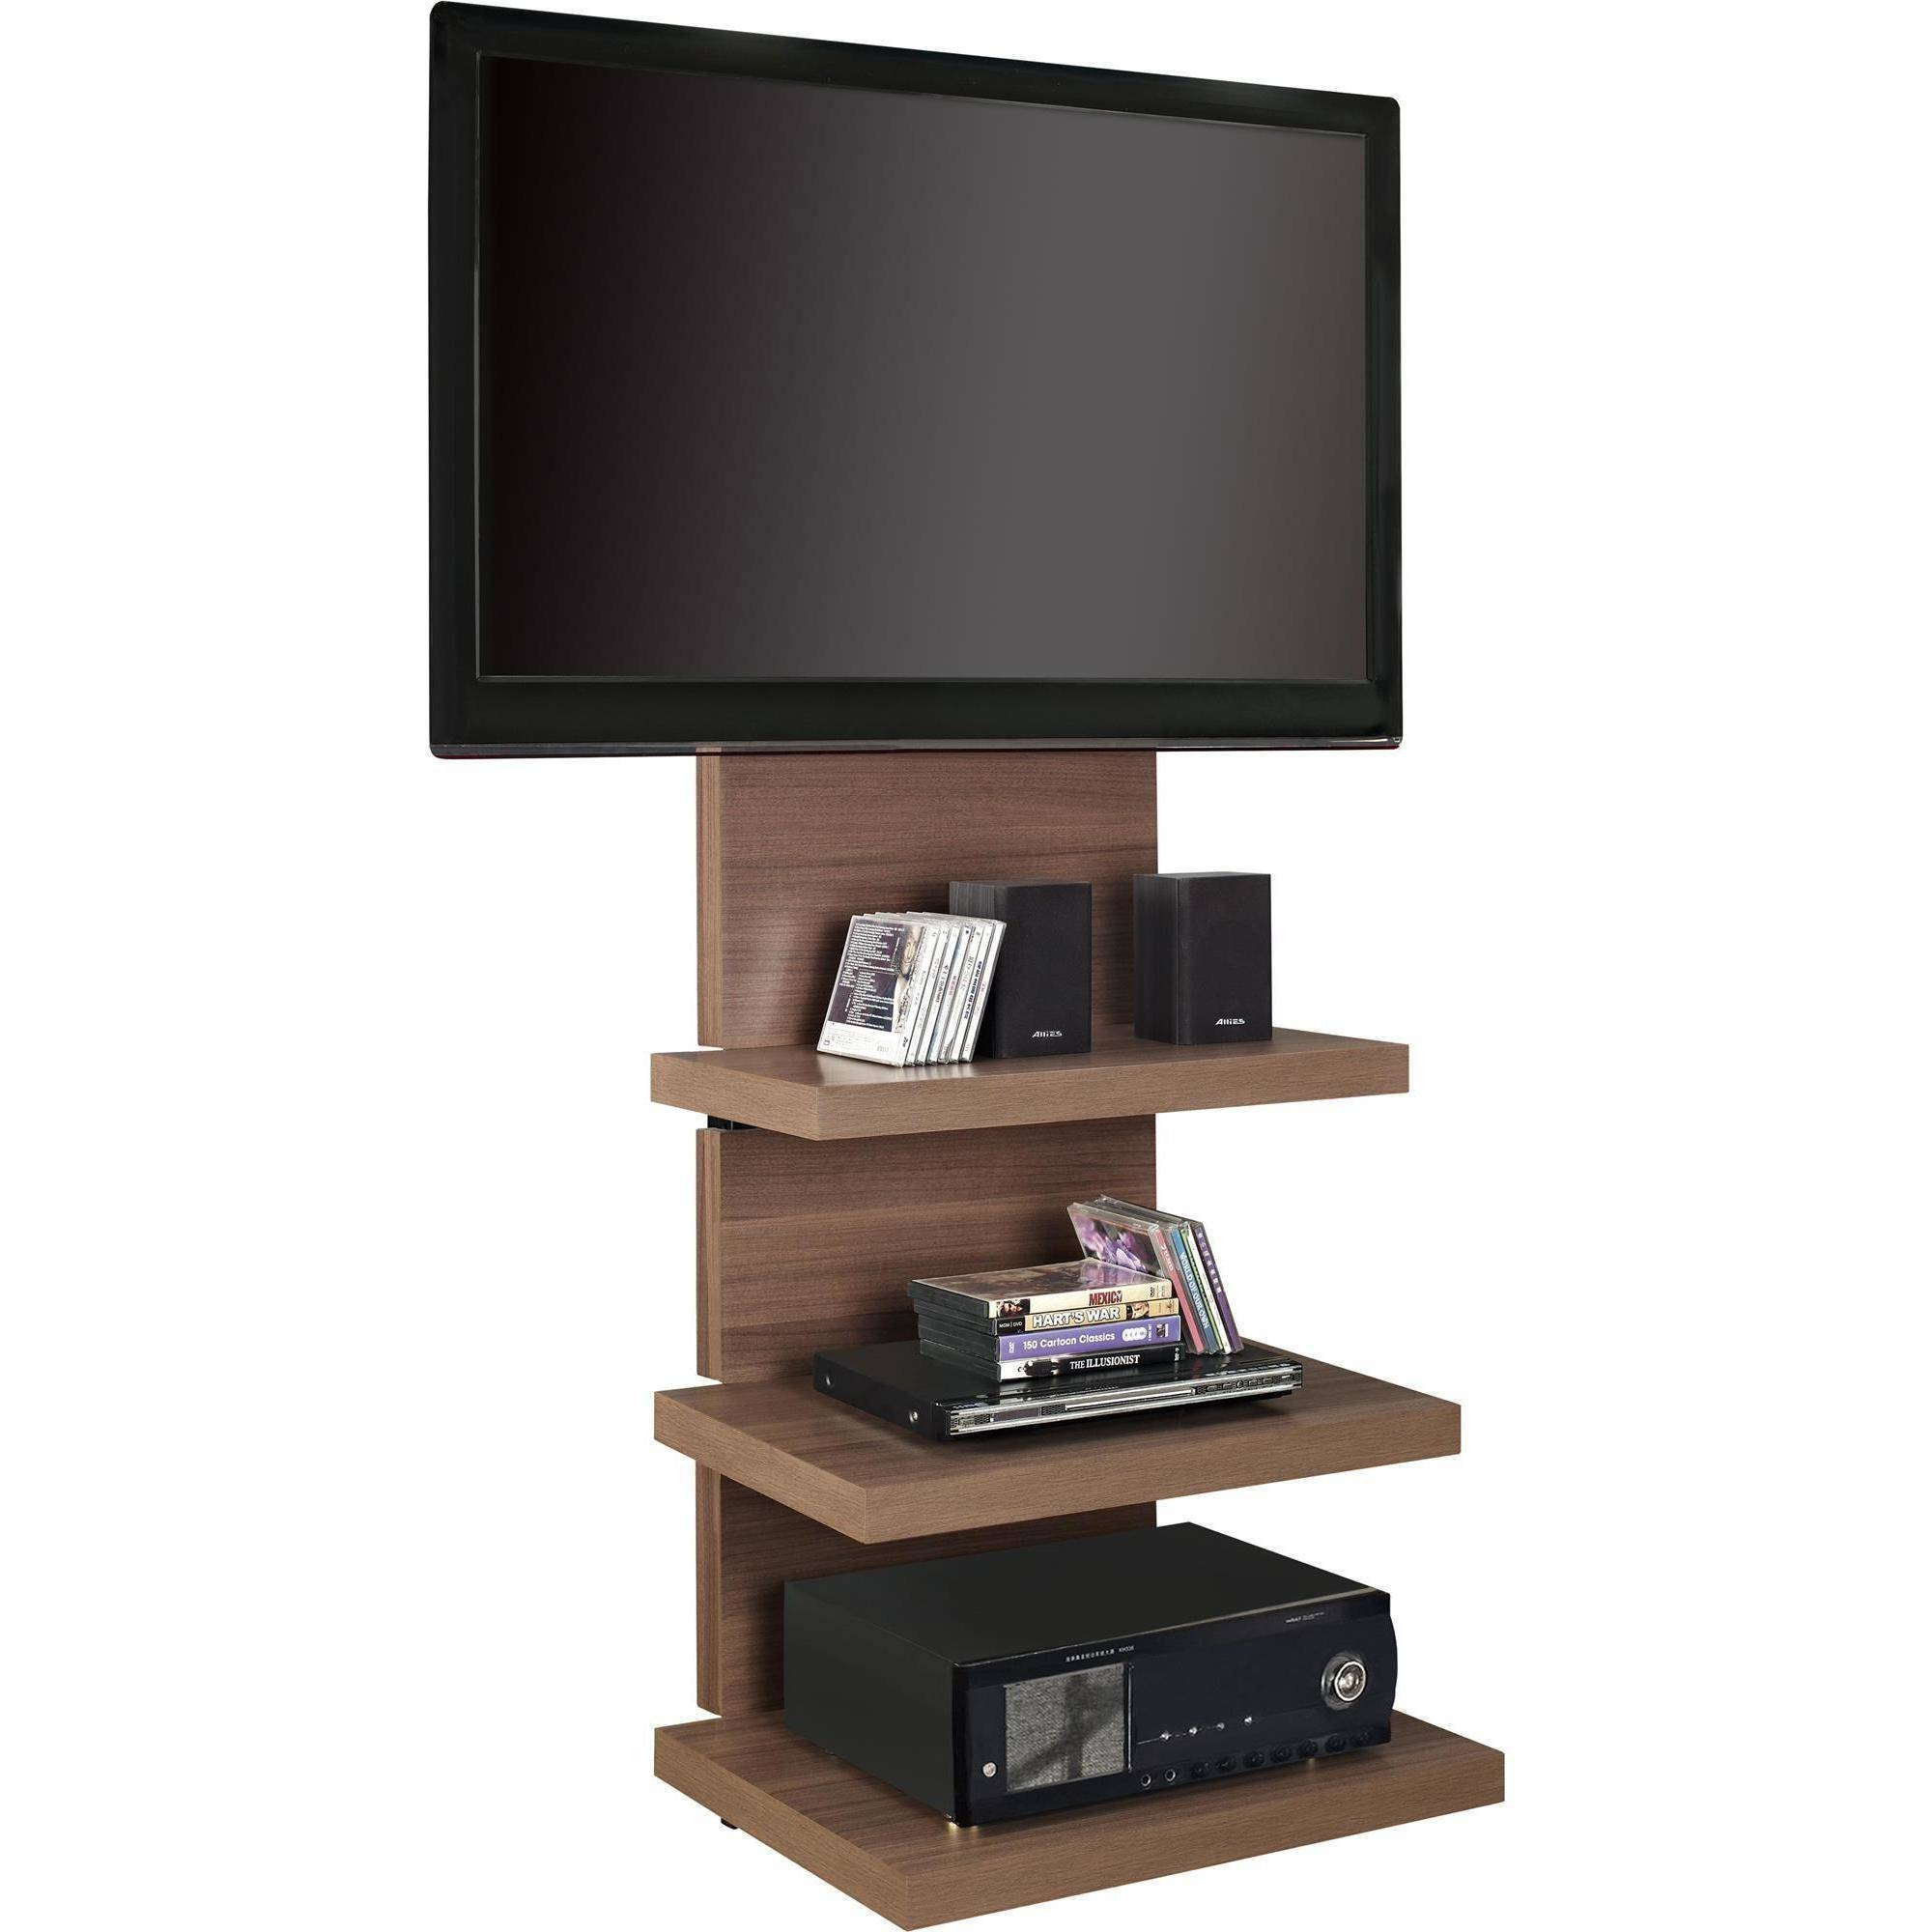 Ameriwood Home Elevation Altramount Tv Stand For Tvs Up To 60 Intended For Como Tv Stands (View 1 of 15)